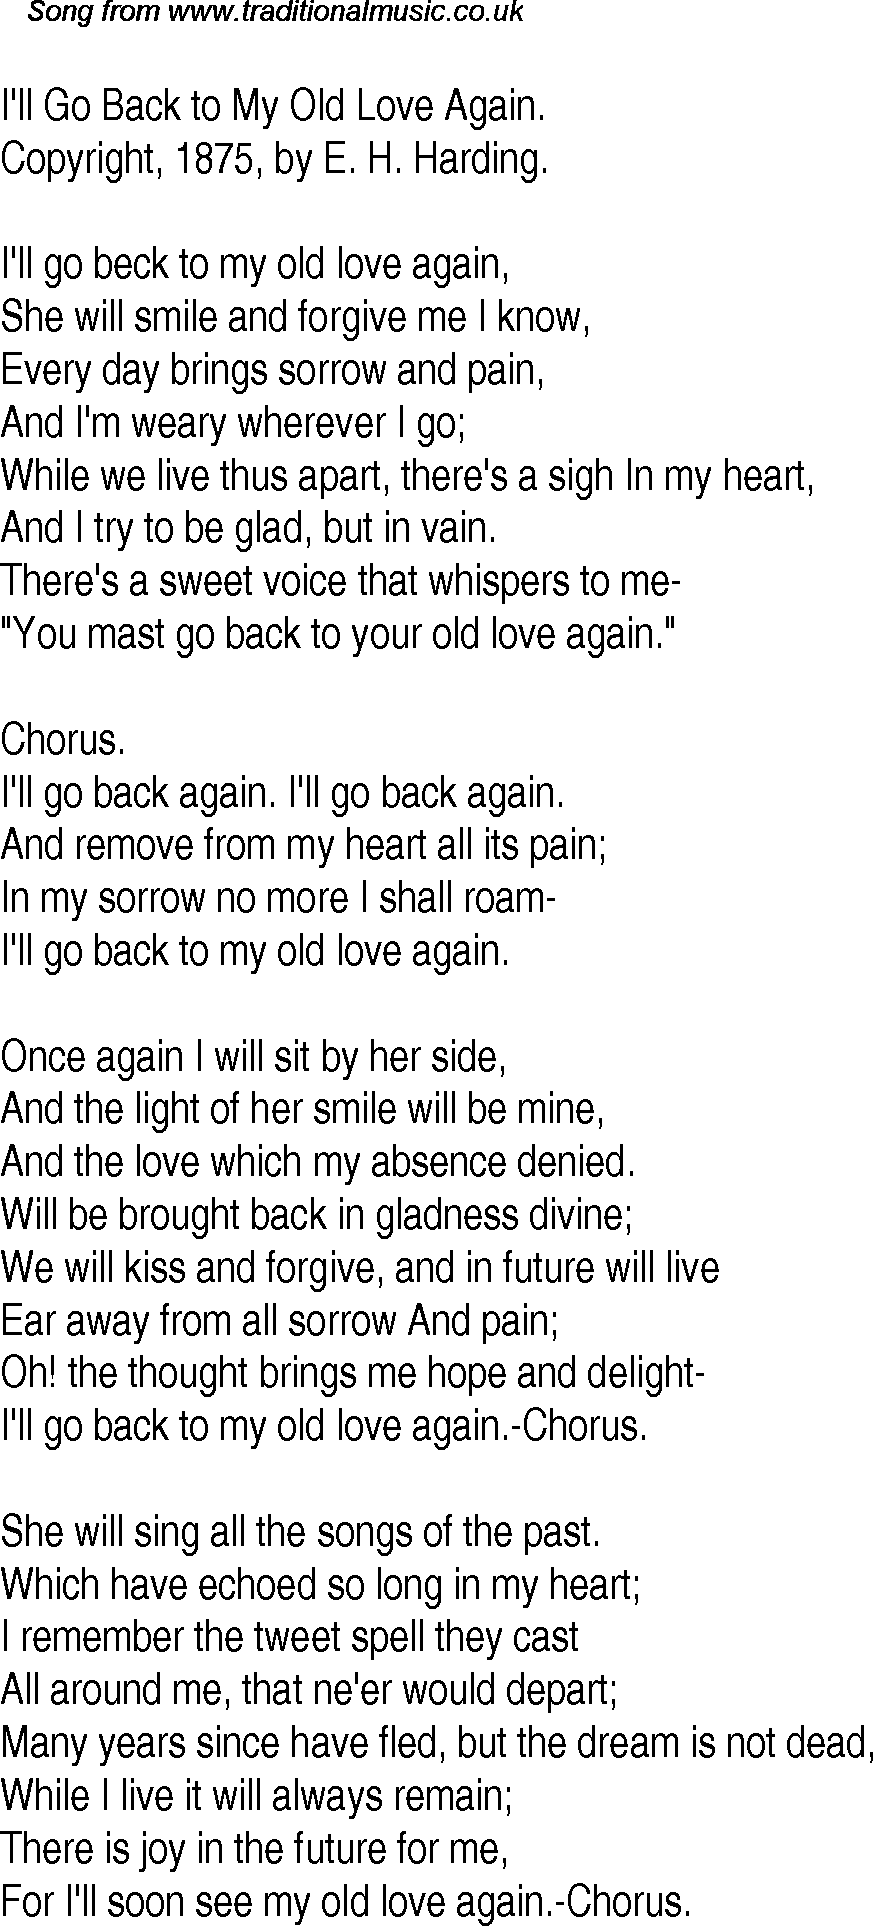 Old Time Song Lyrics For 31 Ill Go Back To My Old Love Again